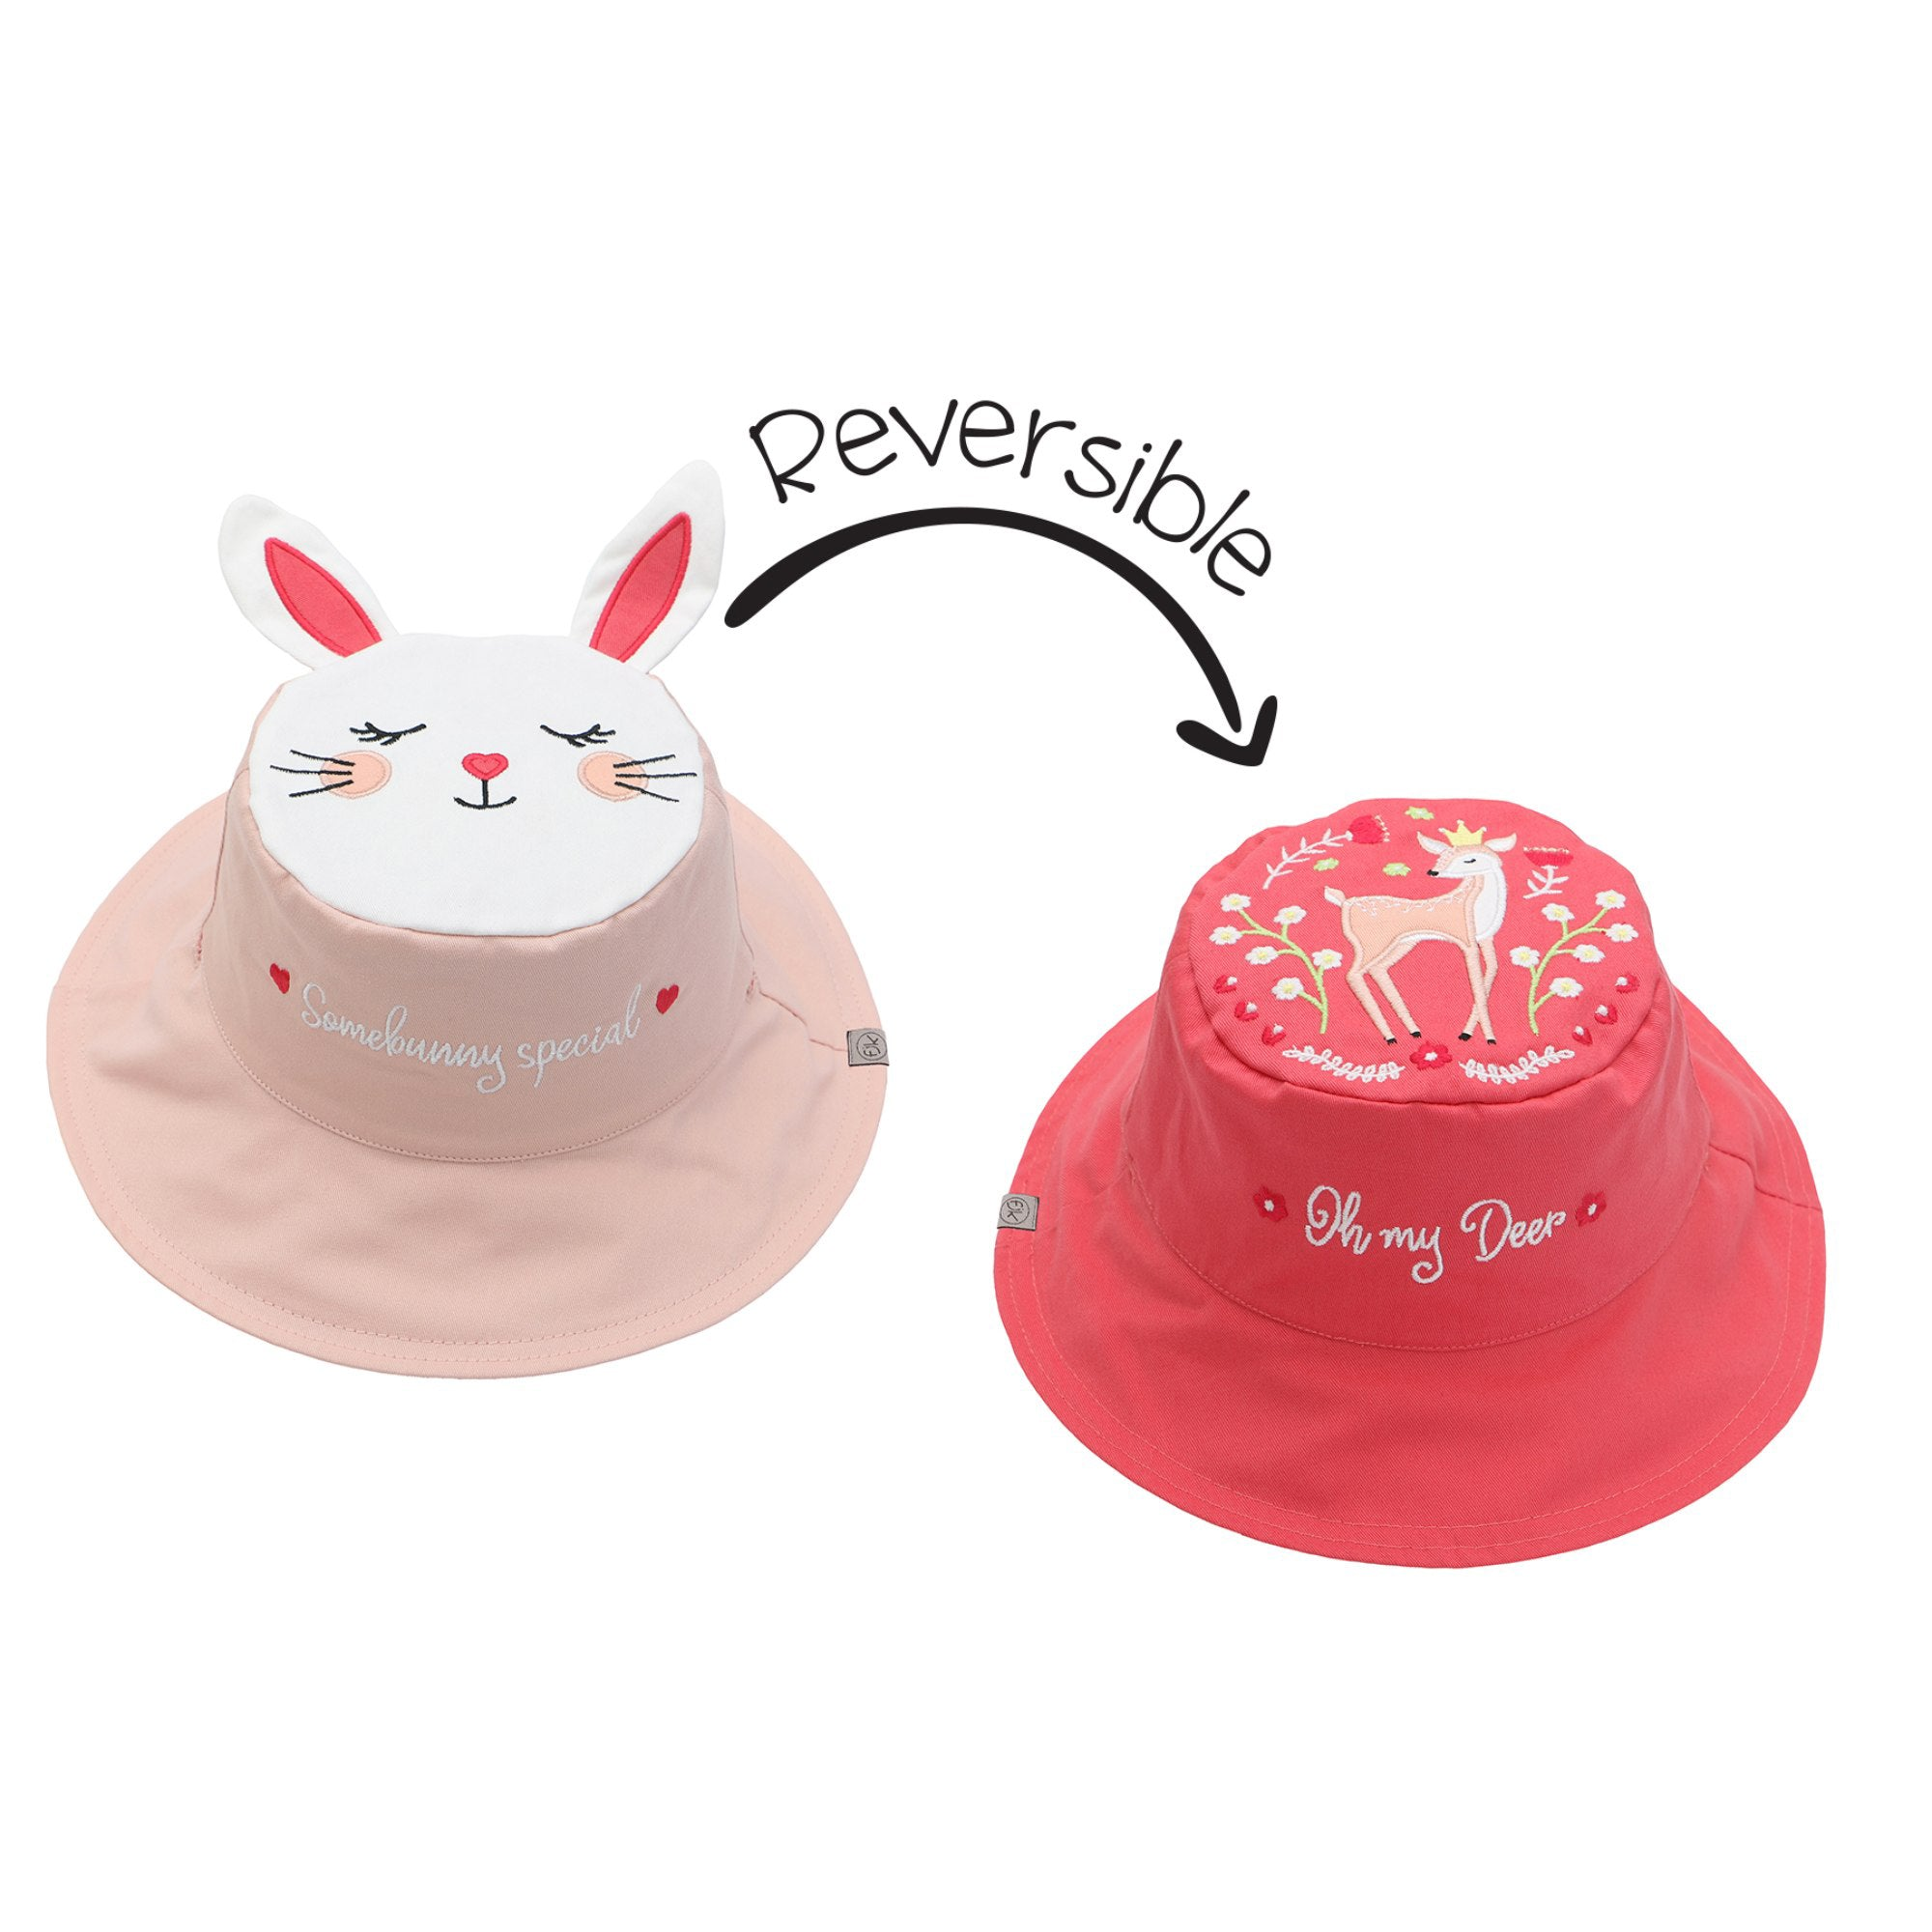 Bunny and Deer Reversible Sun Hat